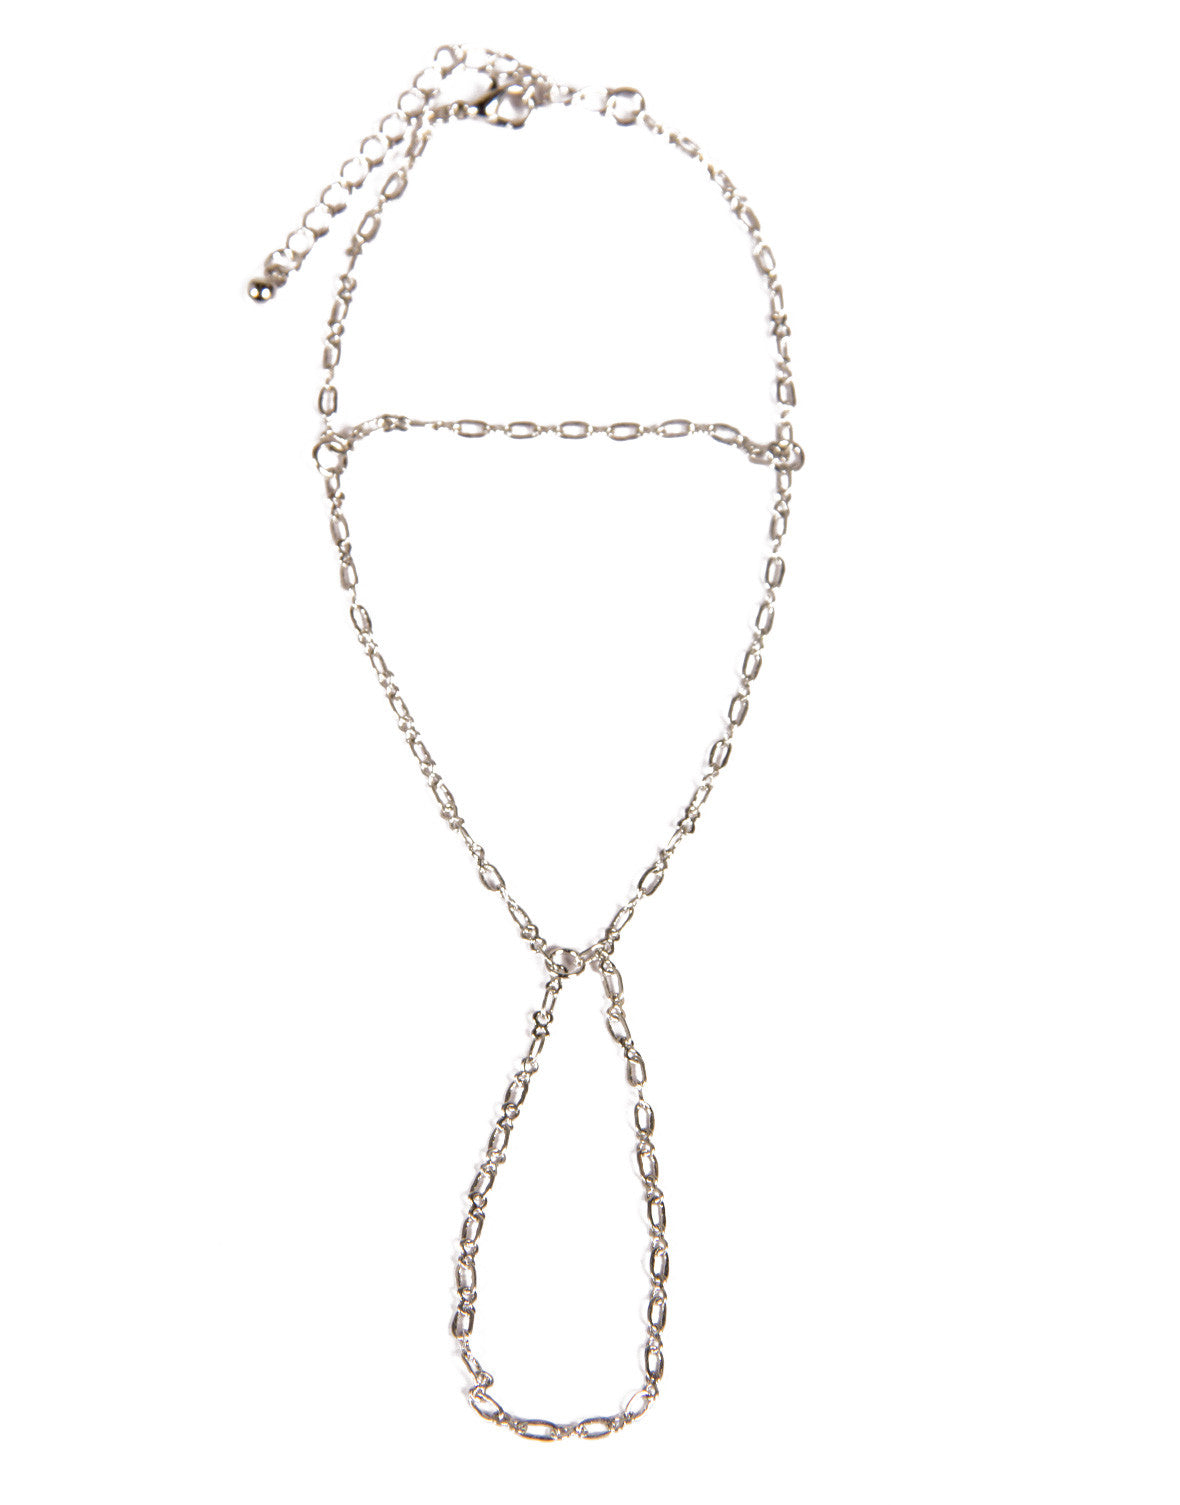 Delicate Chained Hand Chain - Silver - Ana IB 2034-Silver